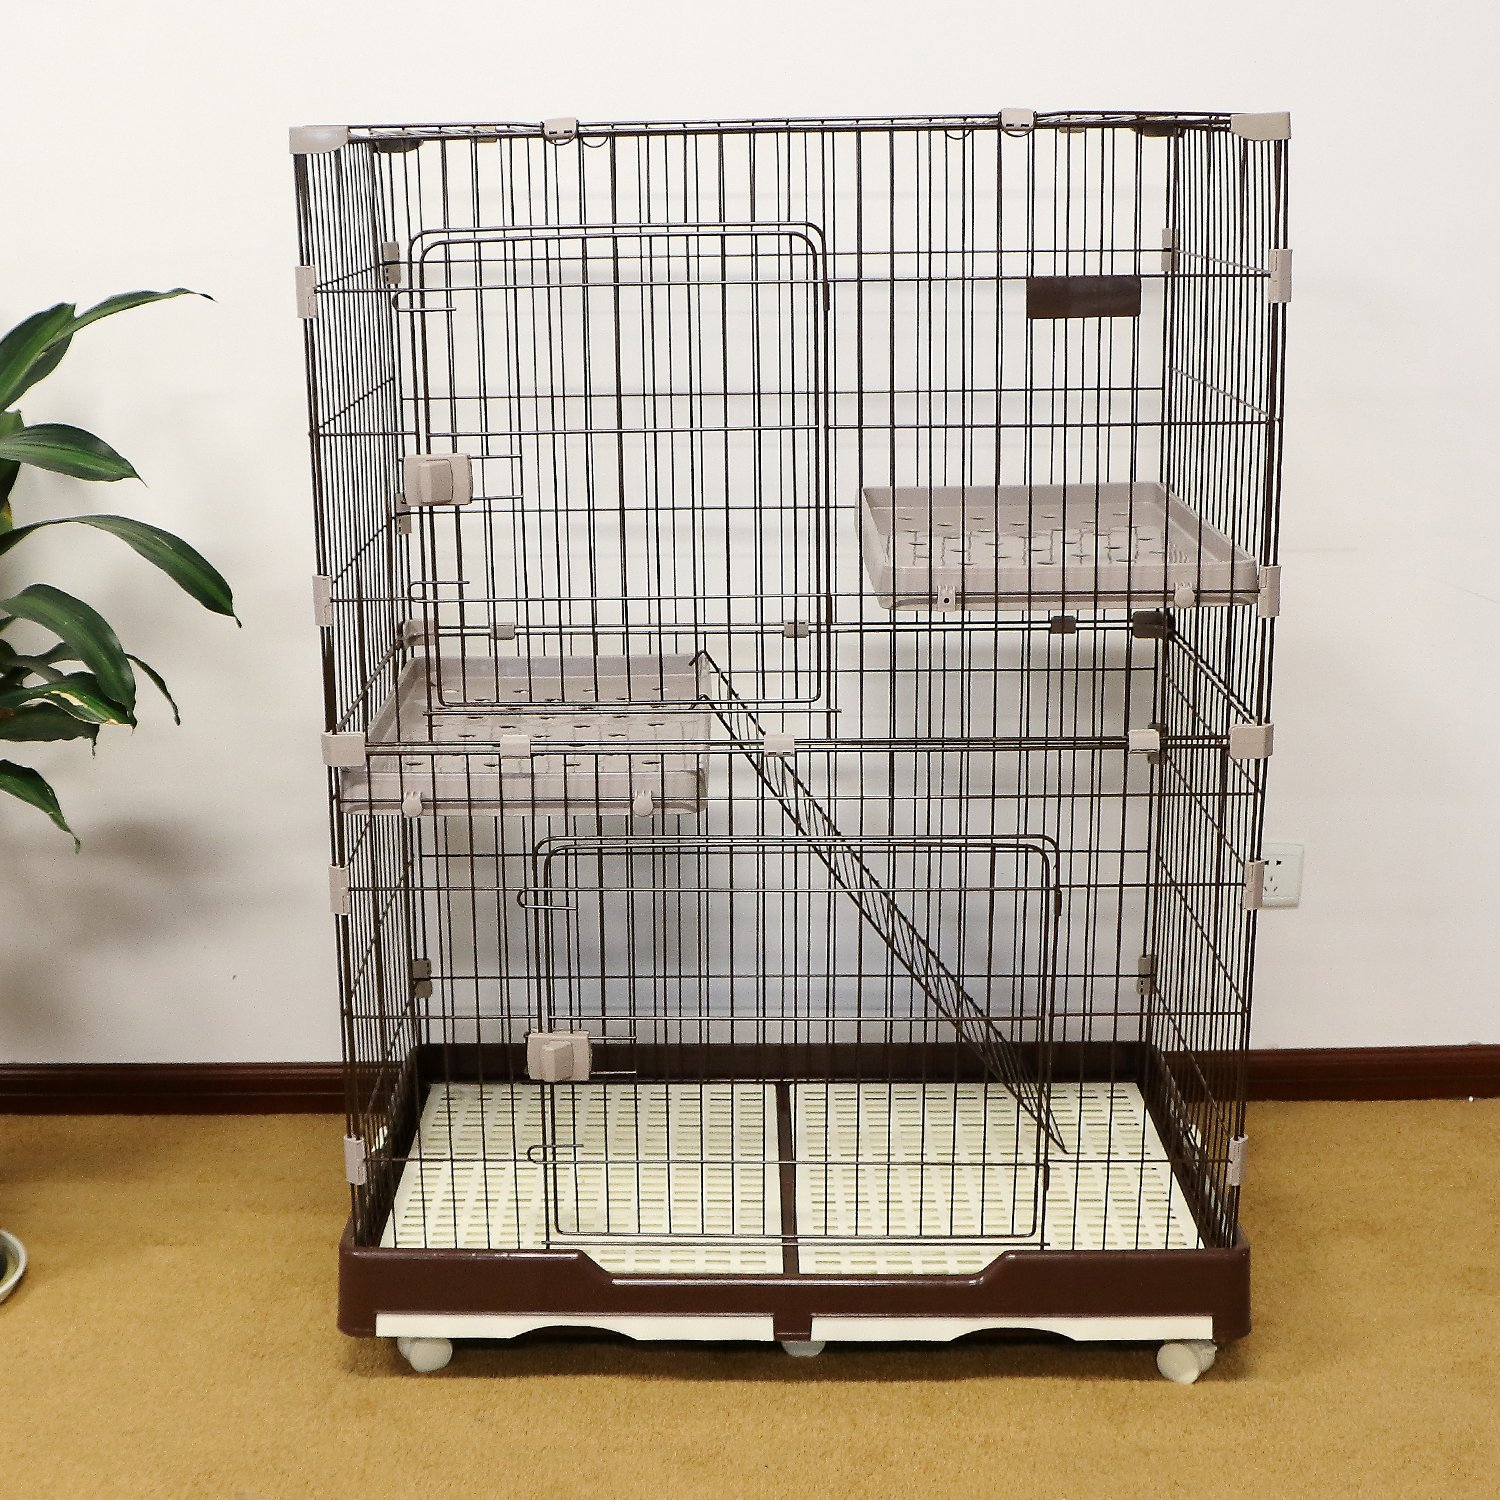 """PANEY 52"""" H Folding Cat Home 3 Level Cat Cage 2-Door Collapsible Pet Wire Crate Cat Playpen w/ Rest Benches Ladder & Tray"""